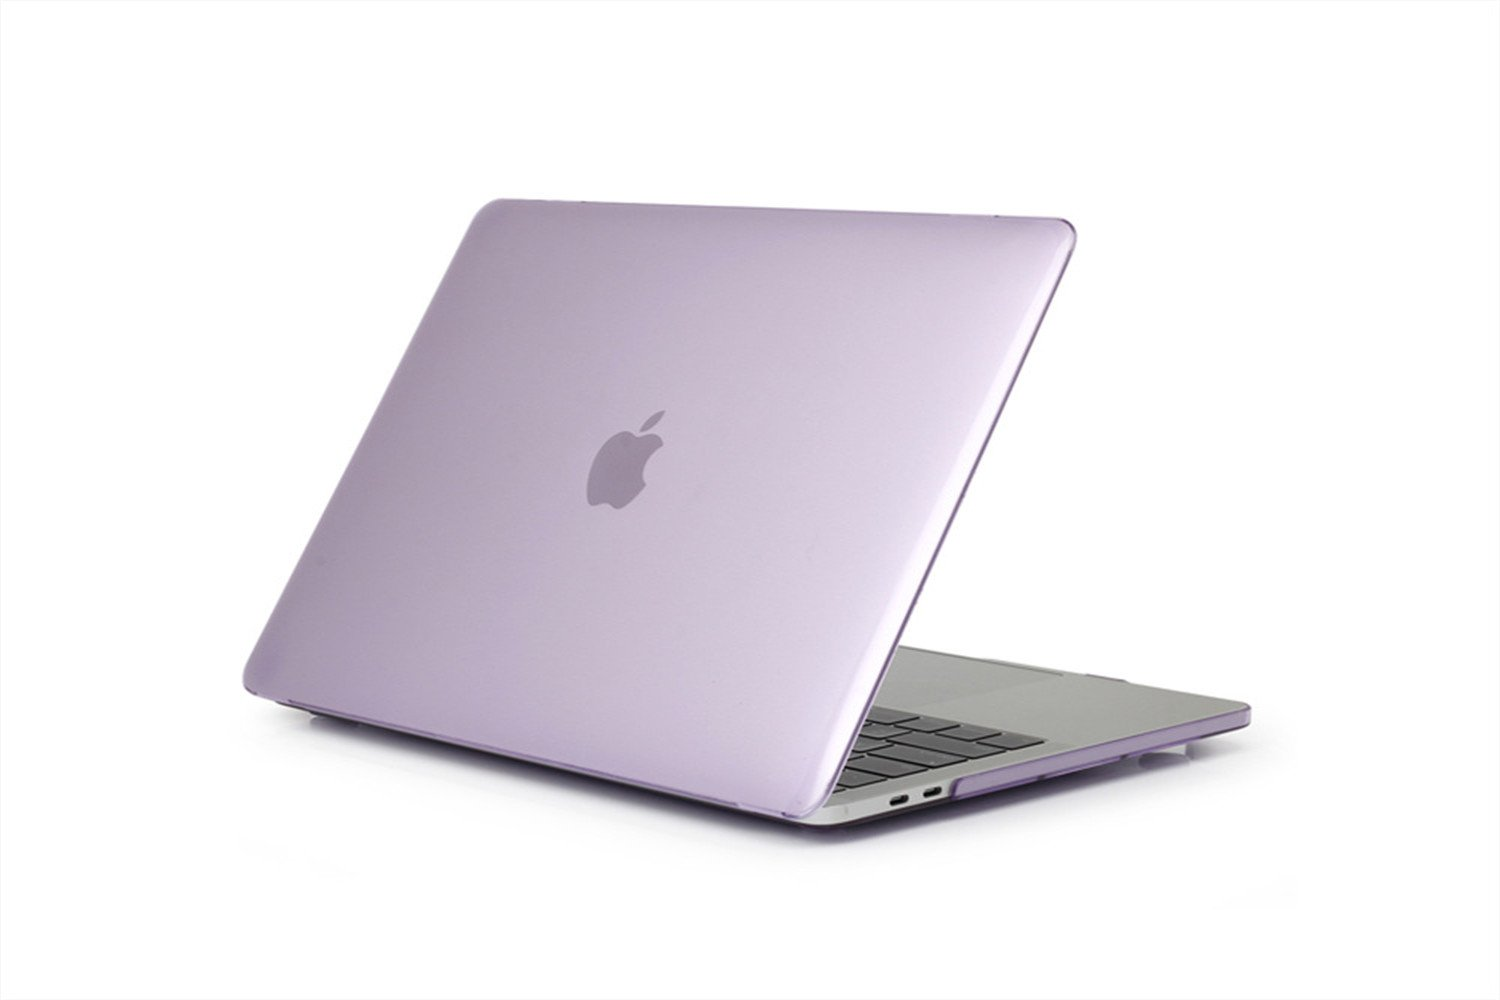 Sammid Plastic Protective Case for MacBook Air 13 Inch, (A1369/A1466) MacBook Air 13 Protective Case Cover- Purple by Sammid